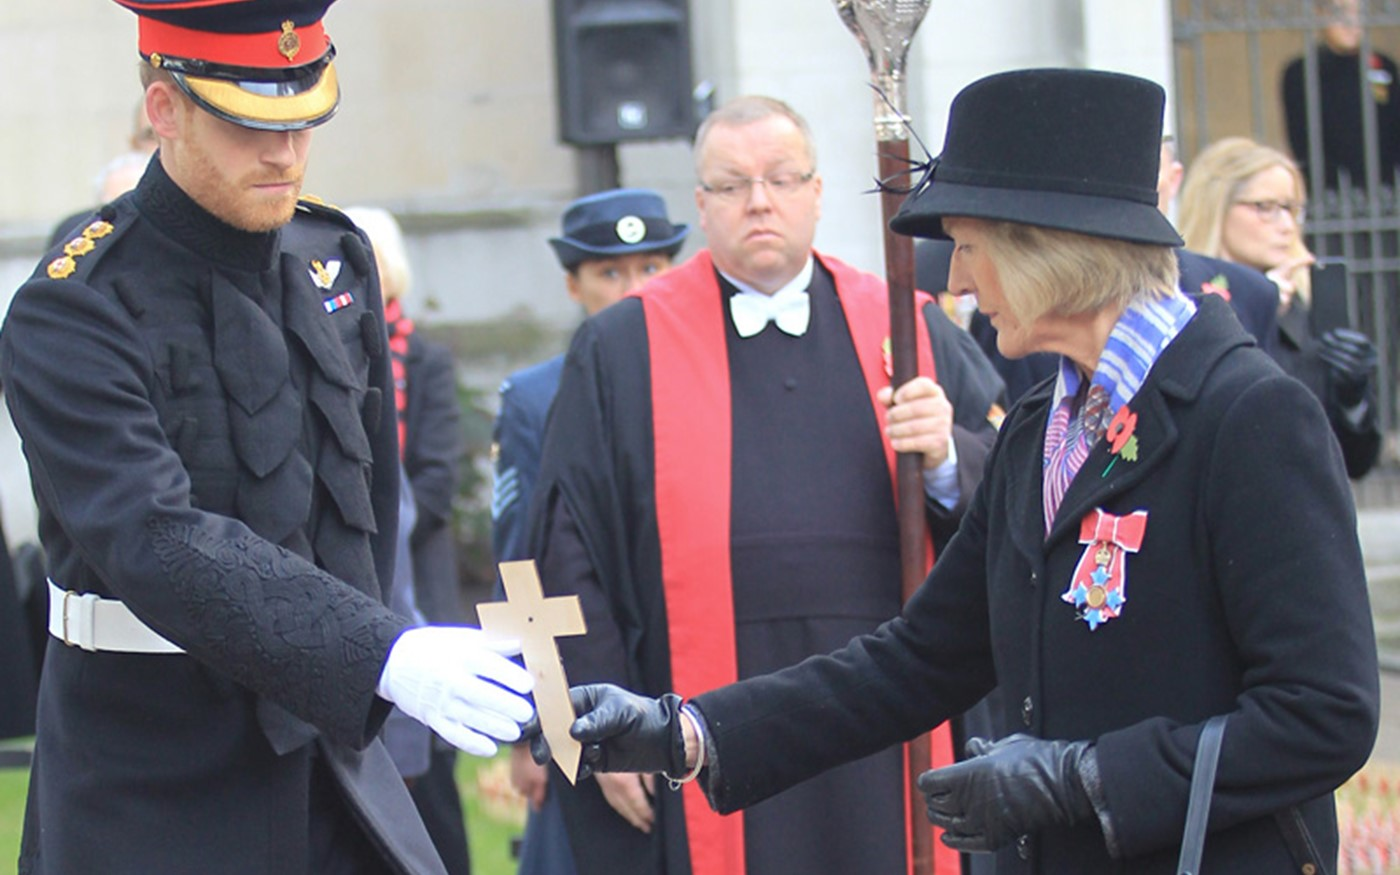 Prince Harry is invited to lay a memorial cross by Mrs Sarah Jones, President of the Royal British Legion Poppy Factory